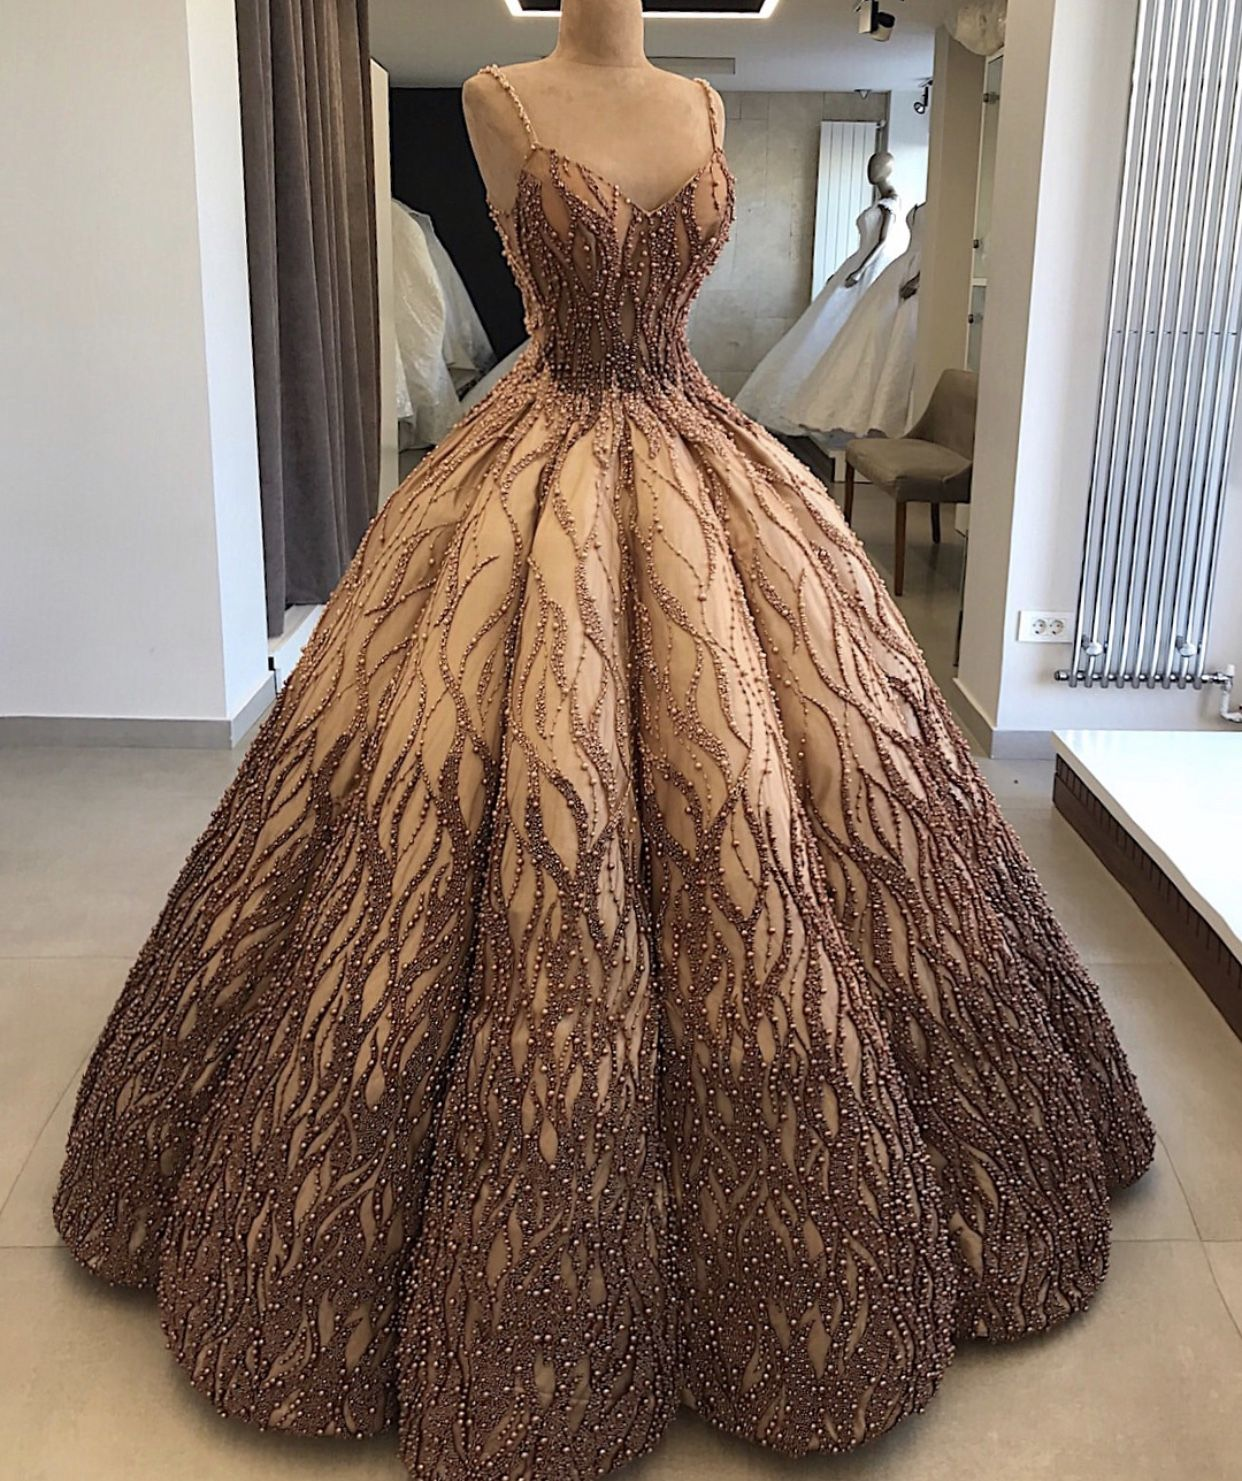 Pin By Kim Tan On Stylespiration Gowns Ball Gowns Dresses [ 1481 x 1242 Pixel ]